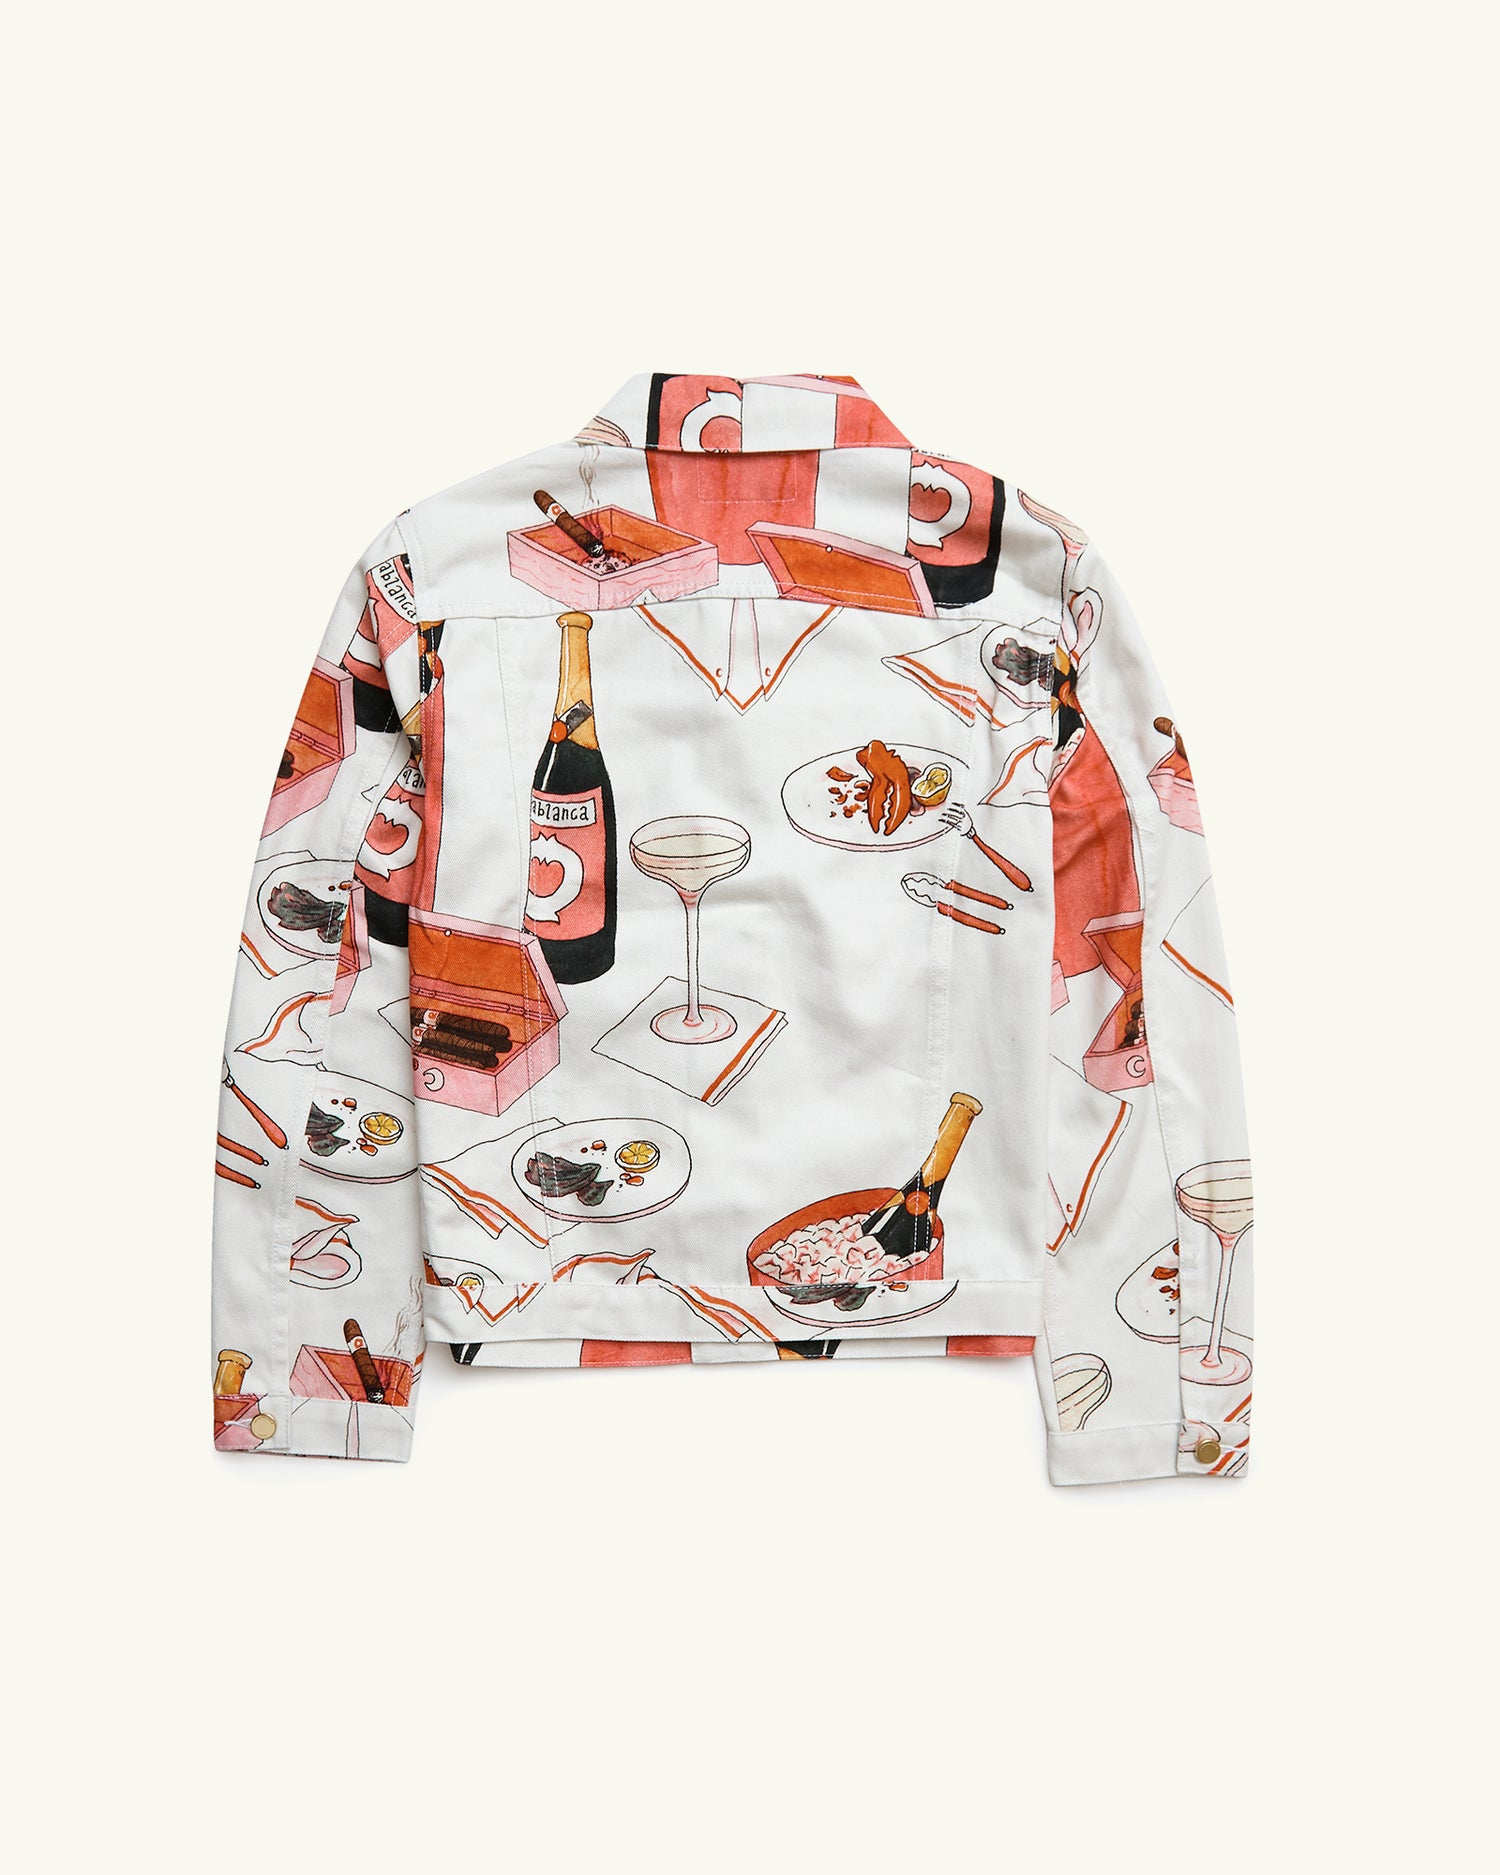 Champagne & Cigars Denim Jacket